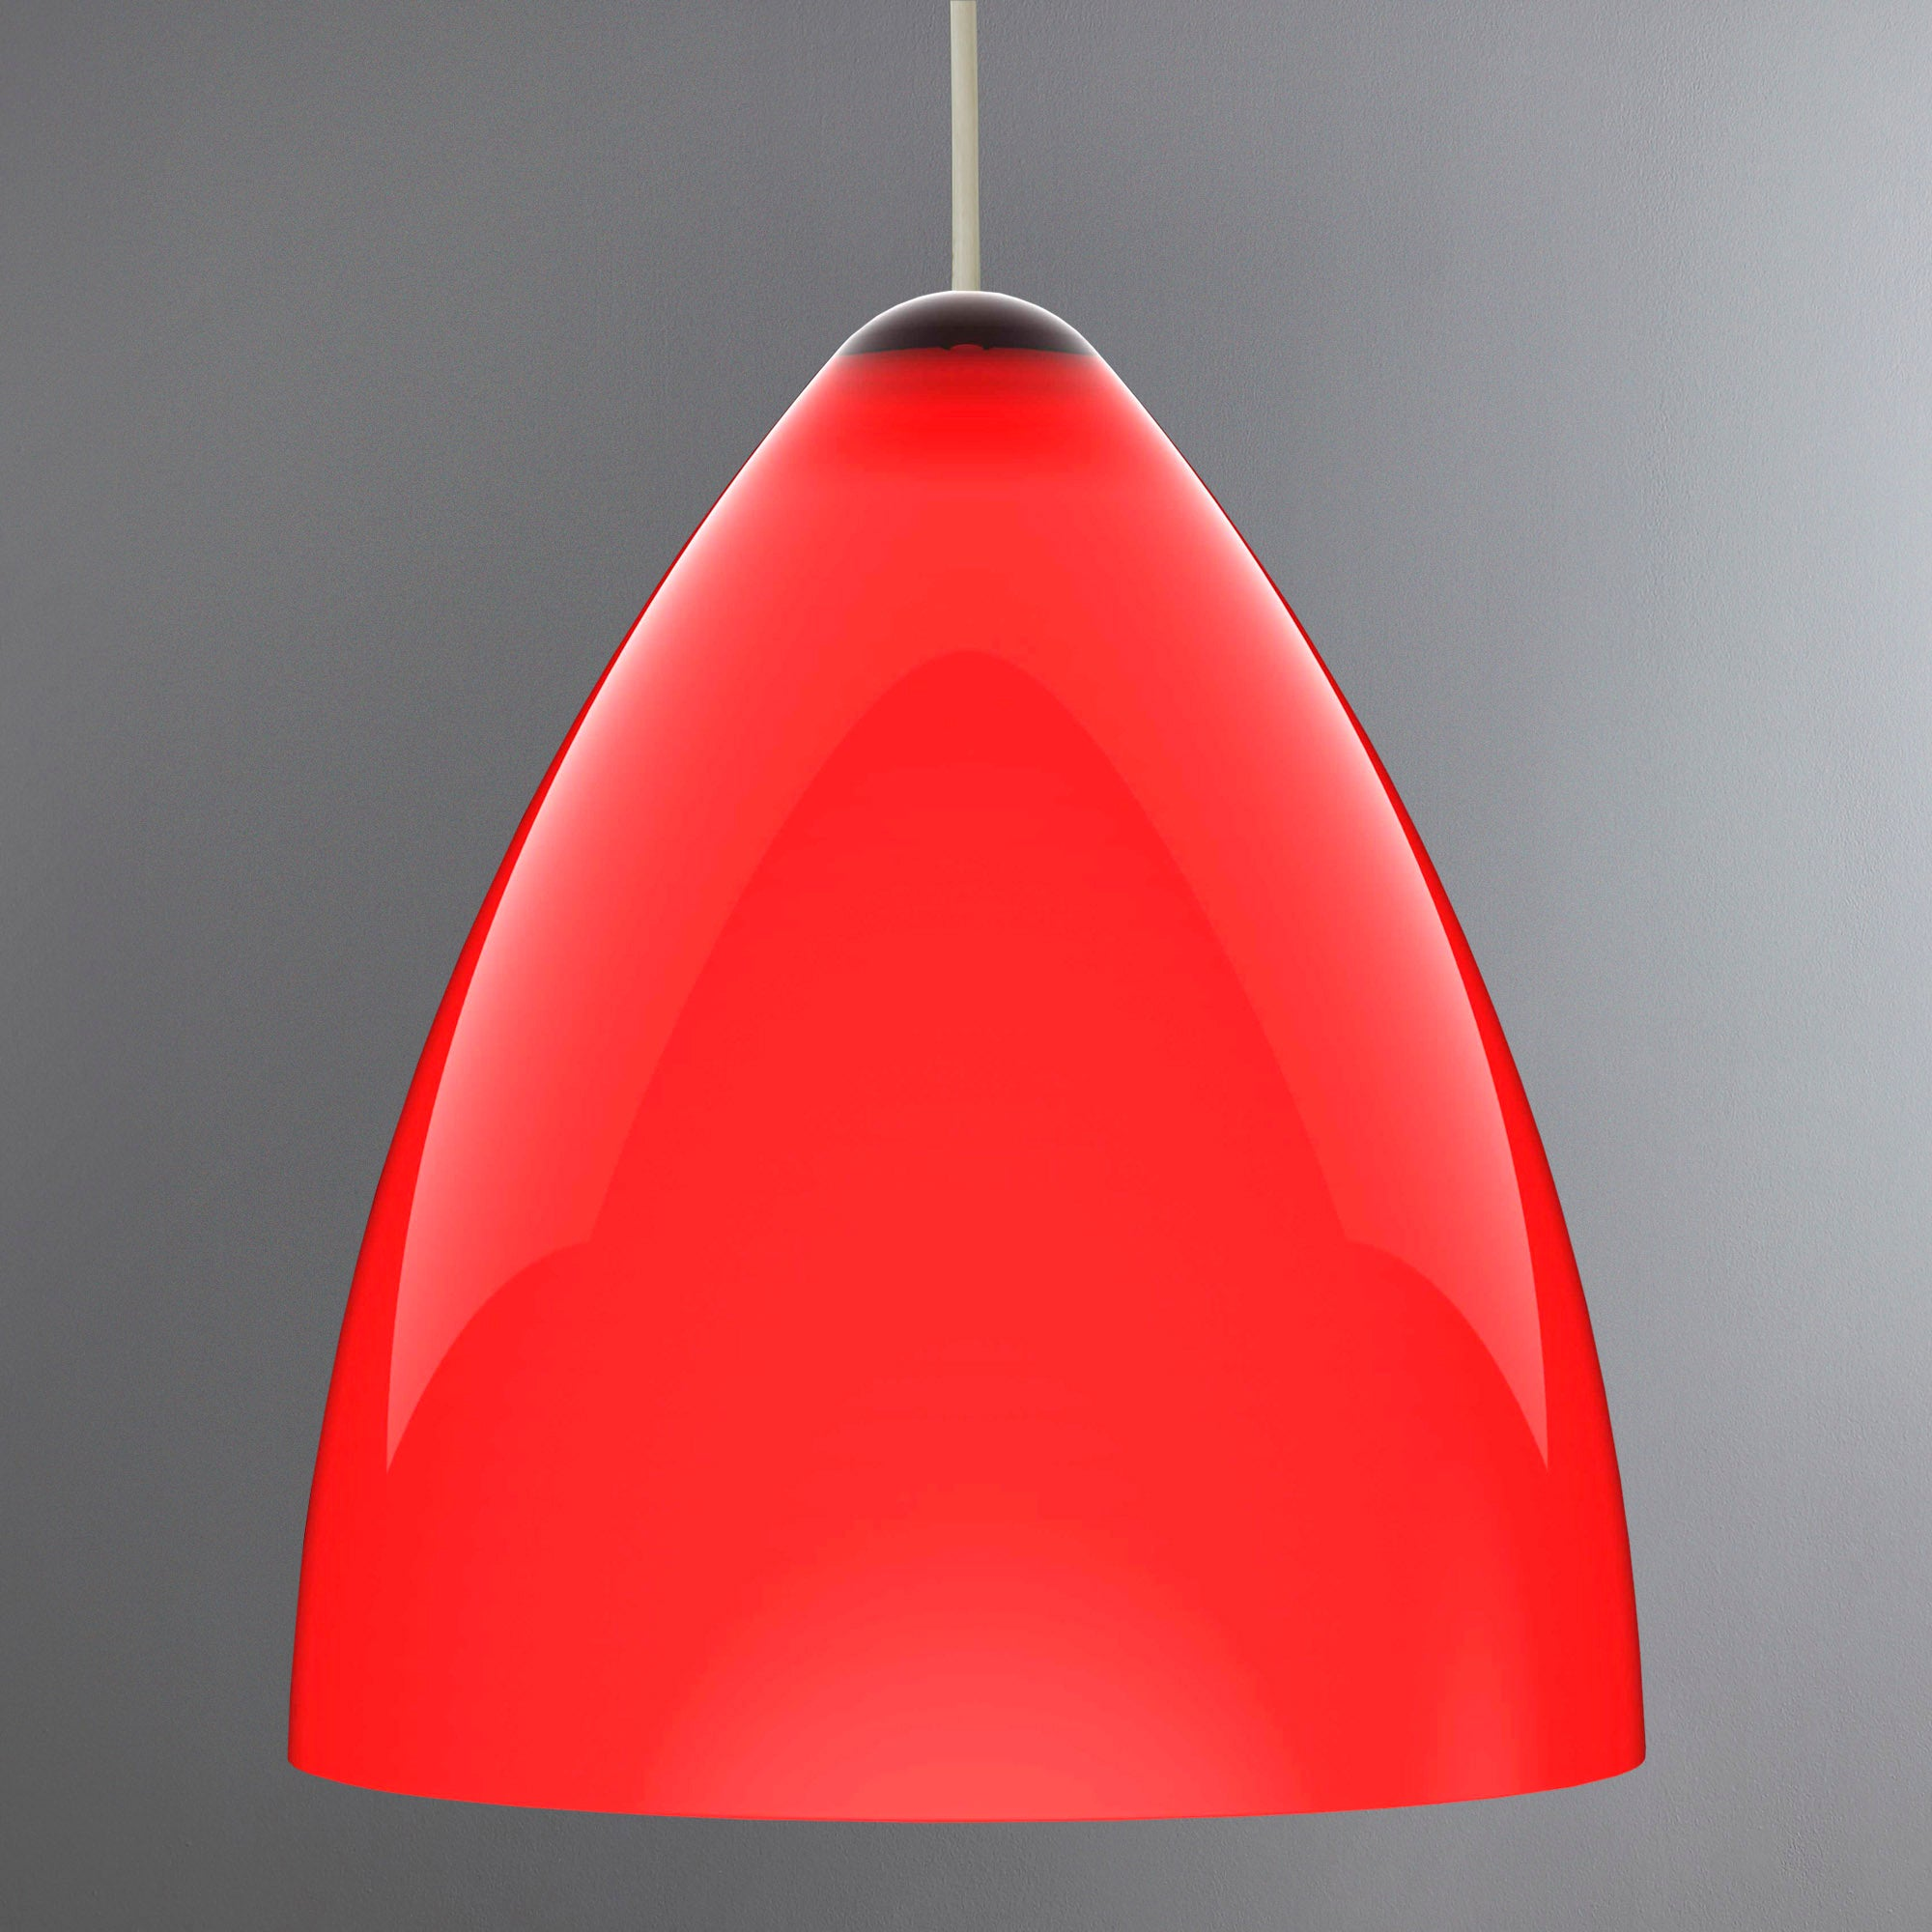 Photo of Funk 27 red light shade red